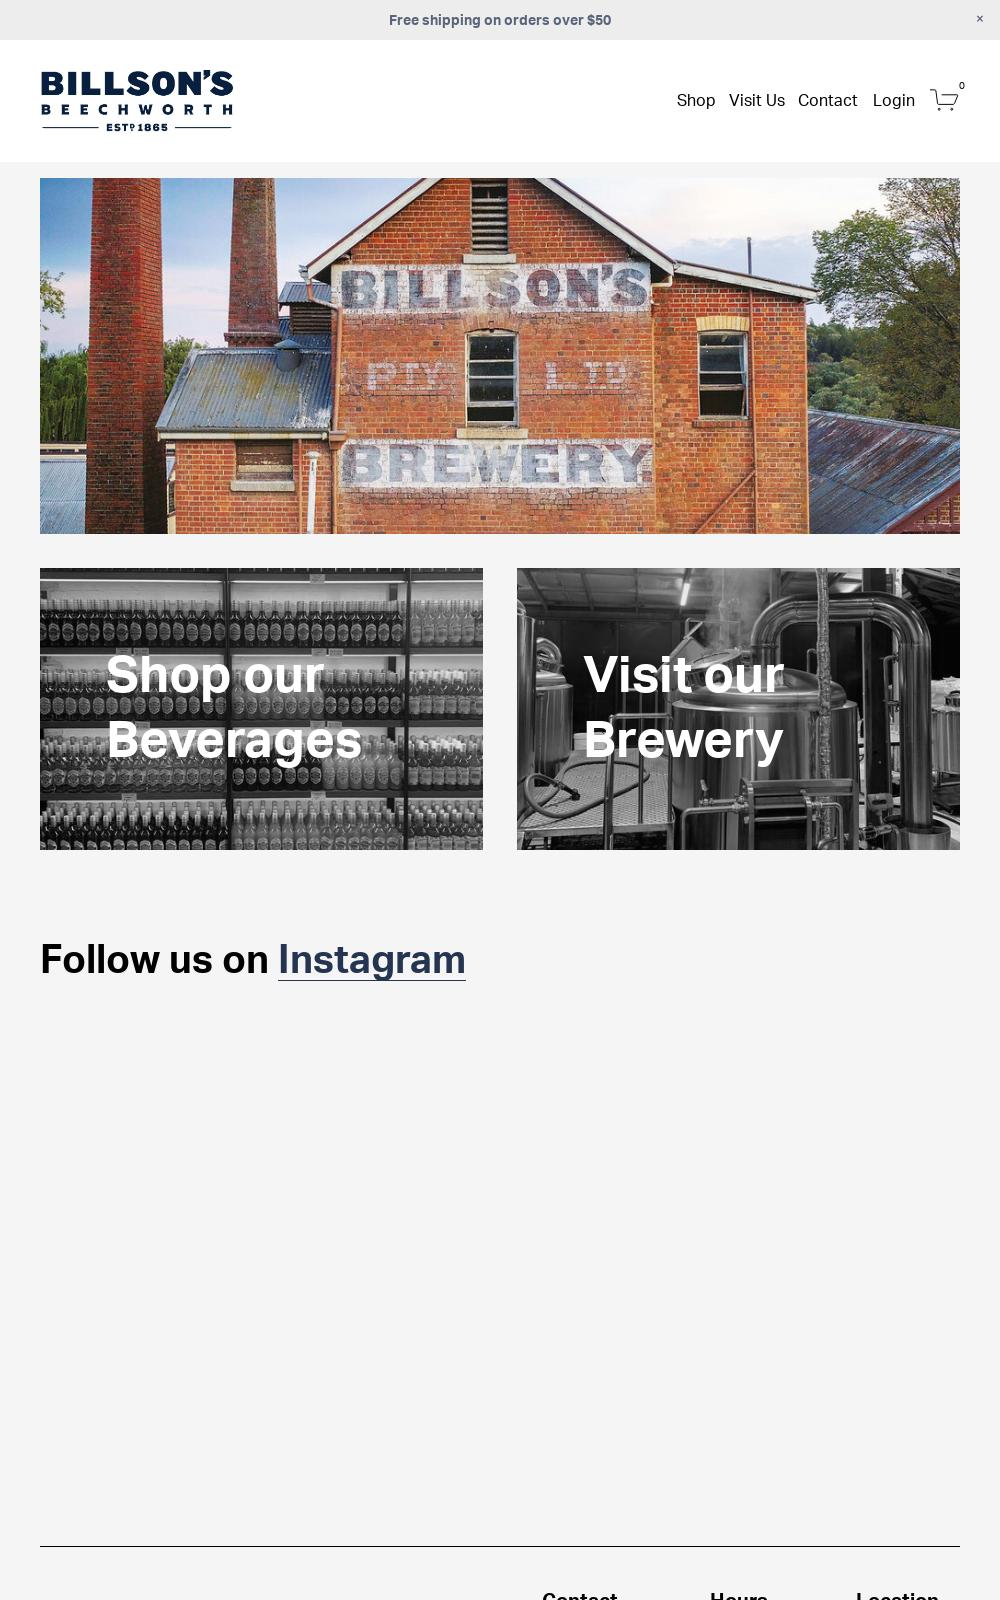 Billson's Brewery Beechworth